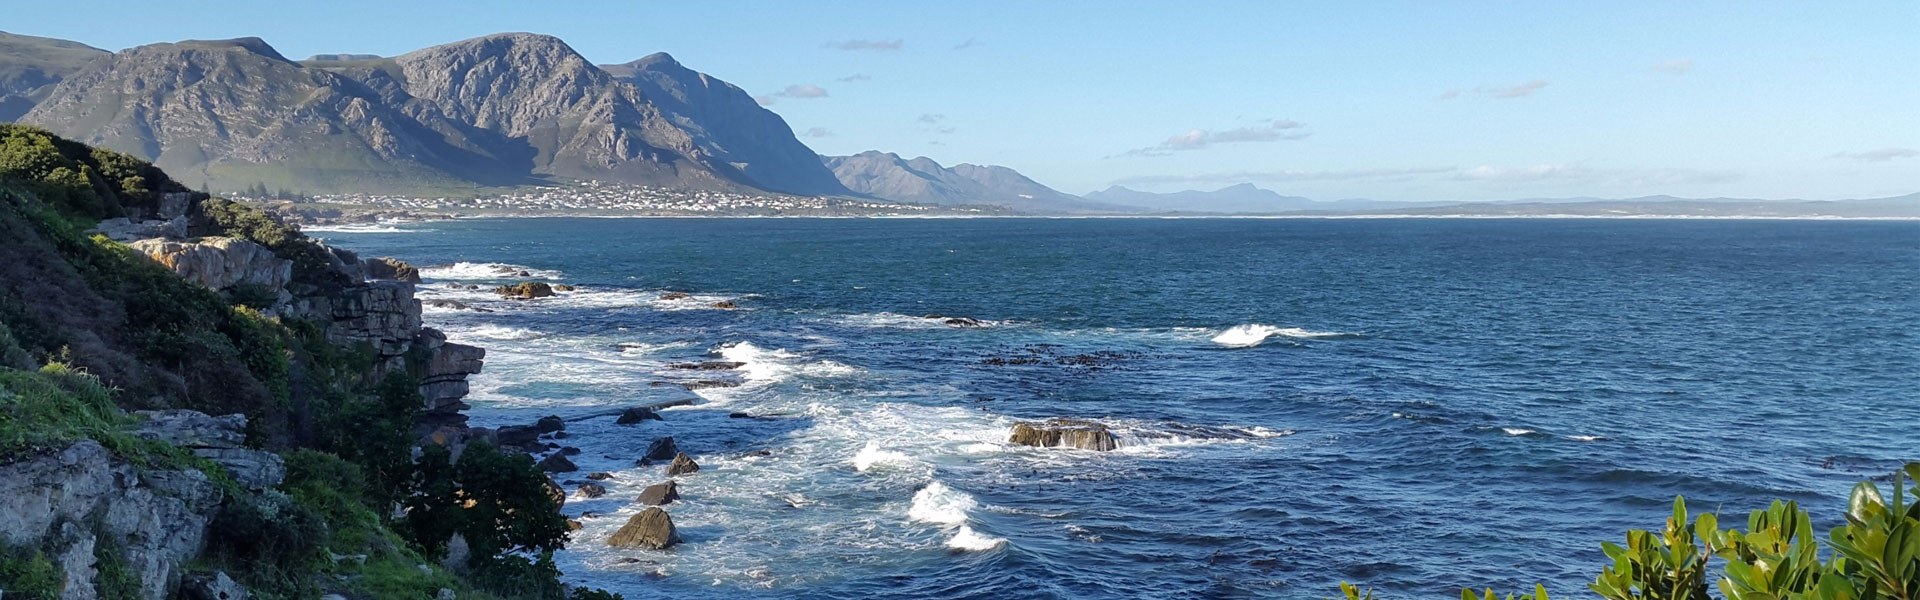 A beautiful image of the Overberg Tour tour